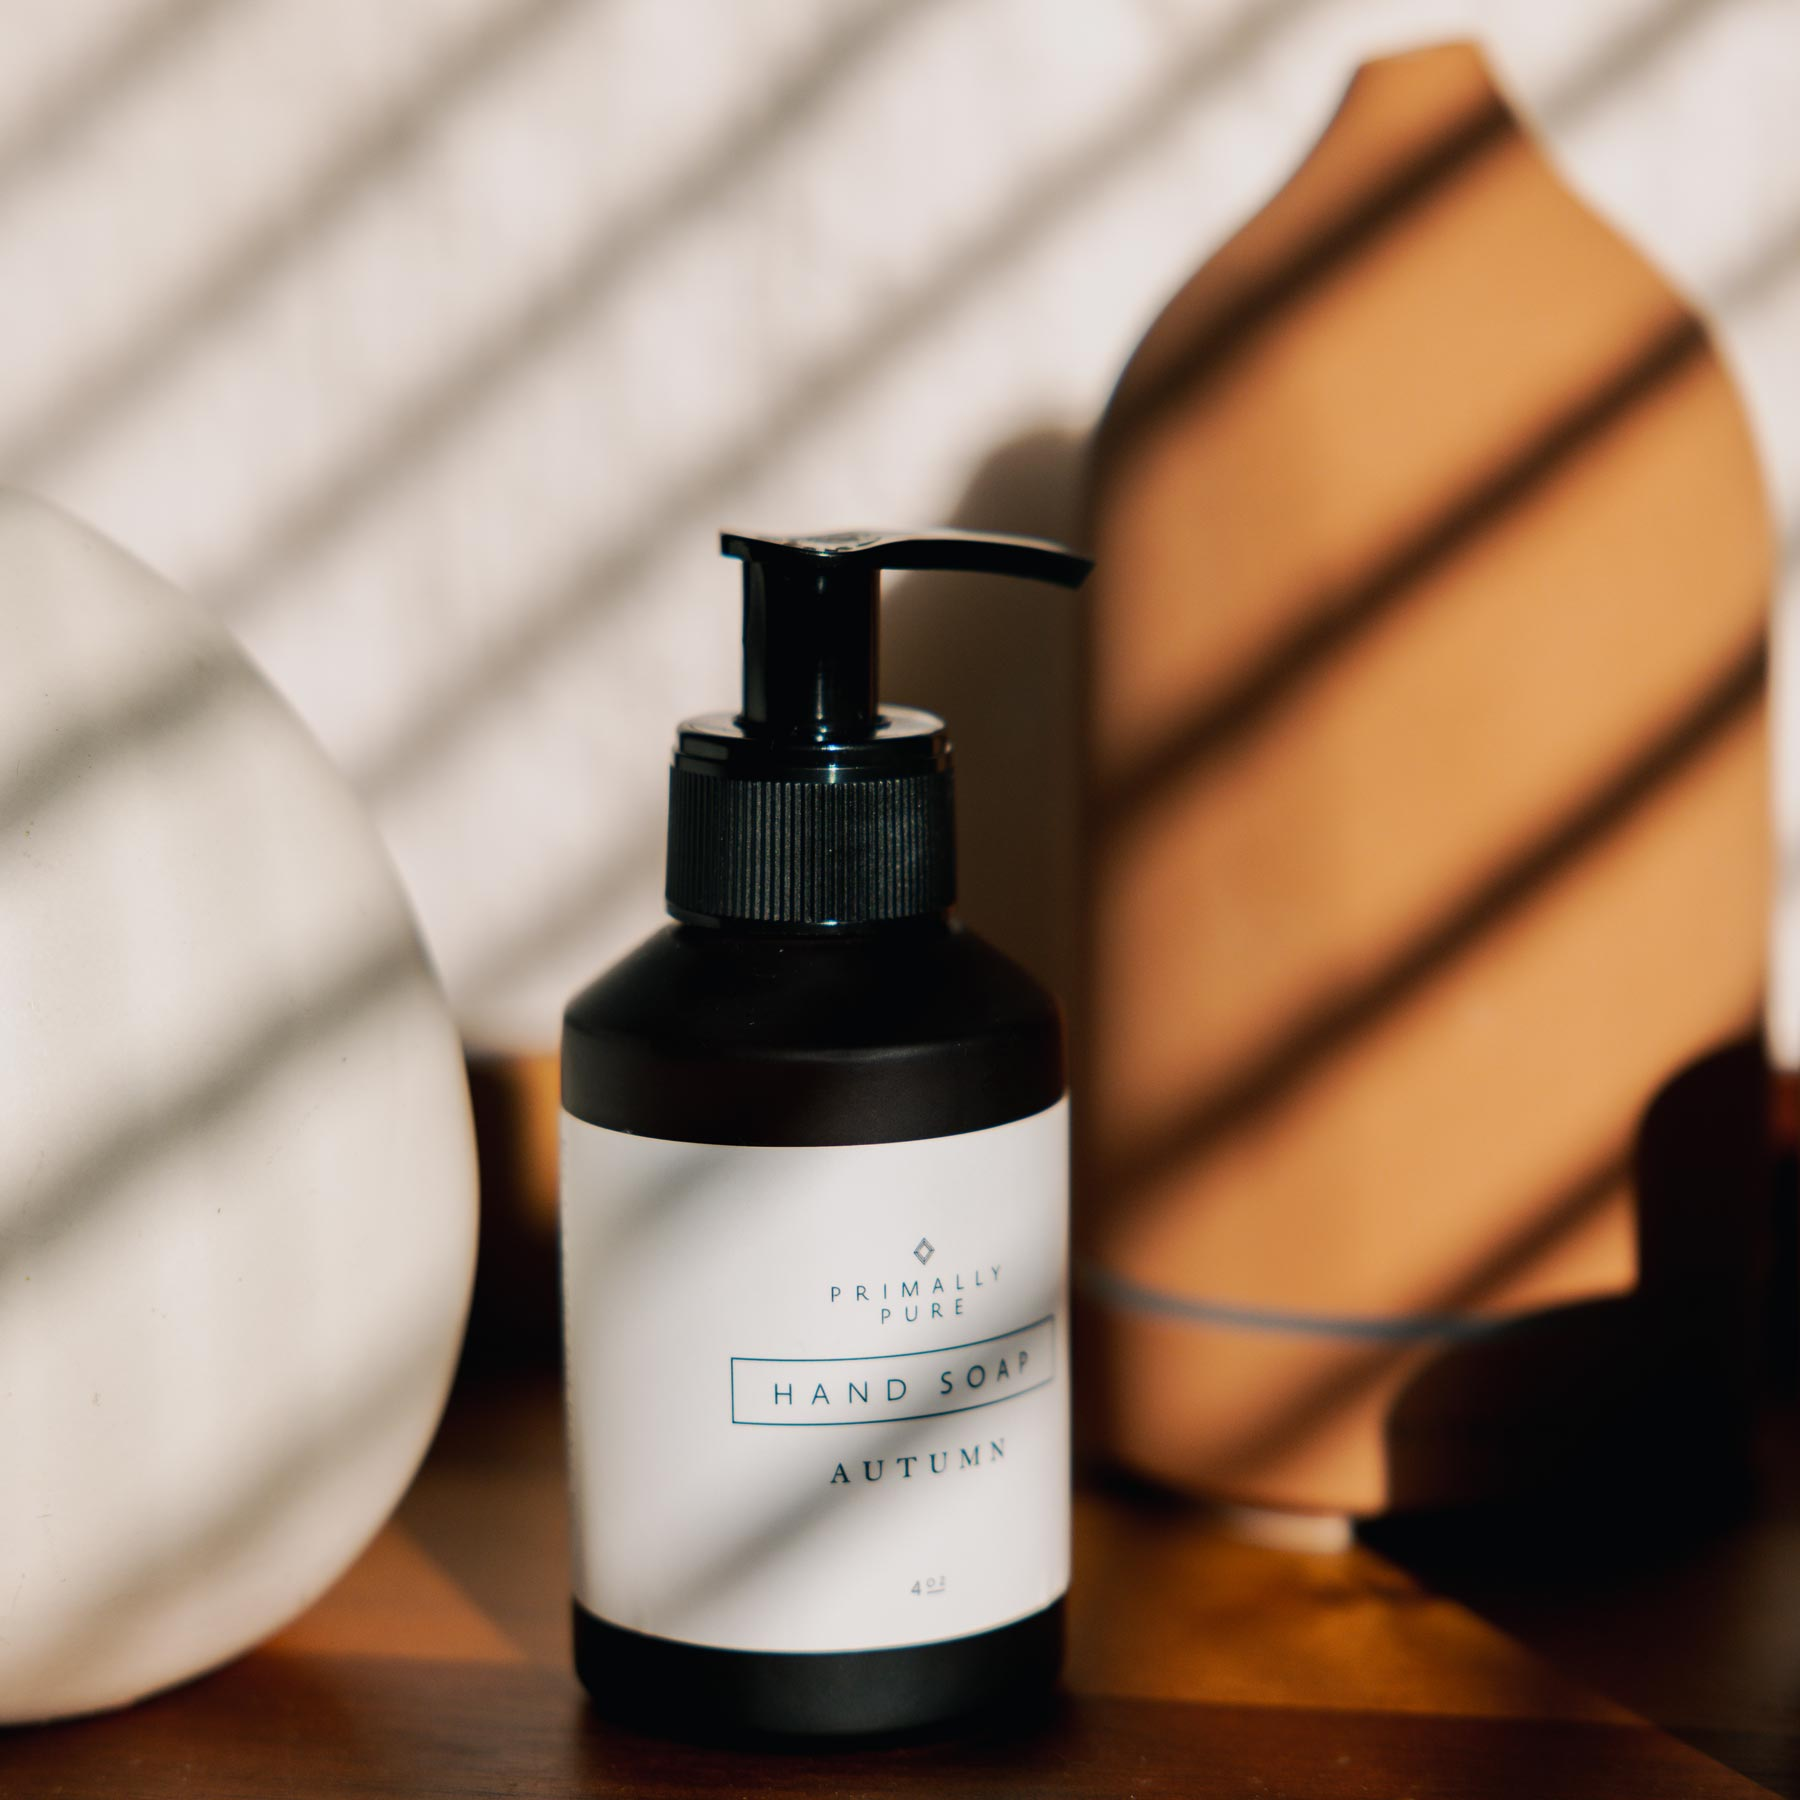 Autumn Home Hand Soap from Primally Pure